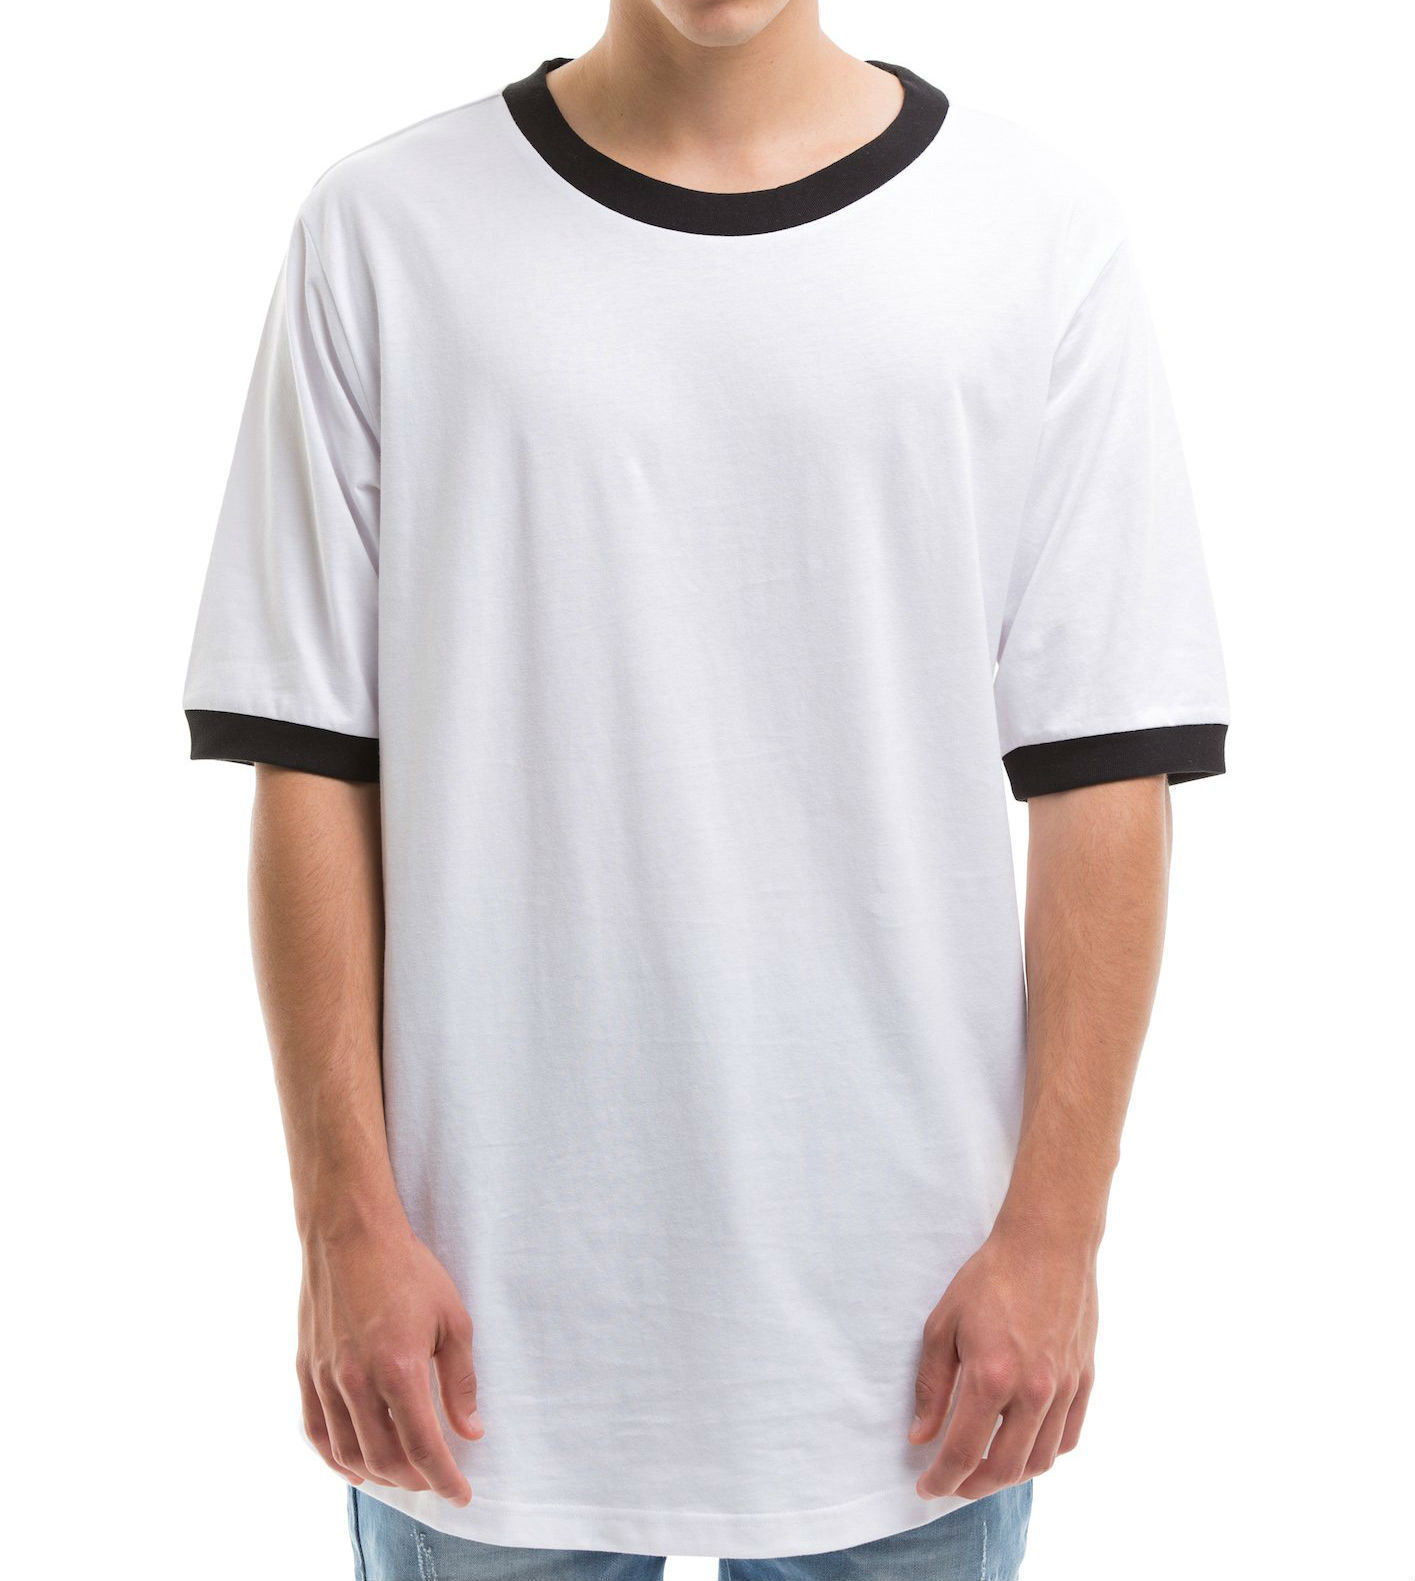 RAREFIED CLOTHING SCOOP CUT SHORT SLEEVE T-SHIRT WHITE